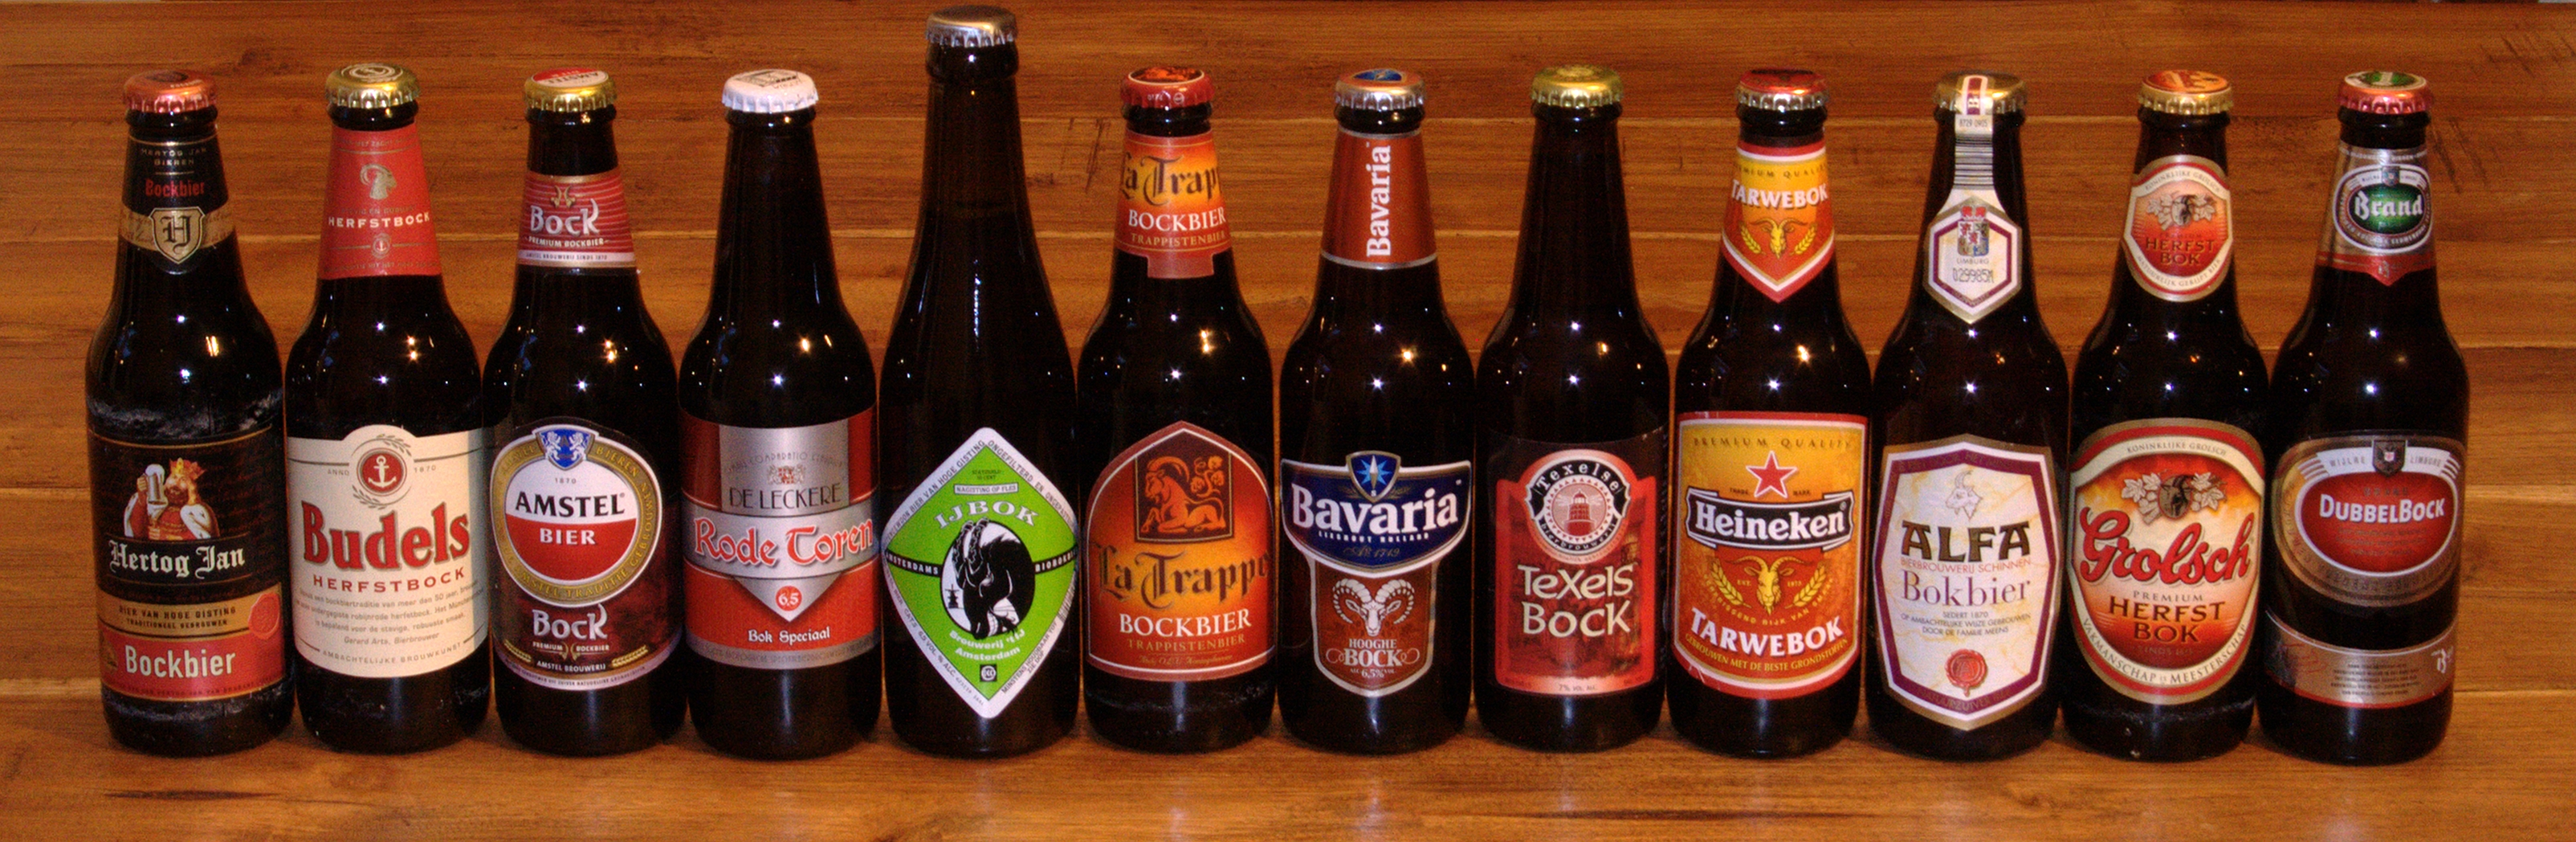 wat is bokbier